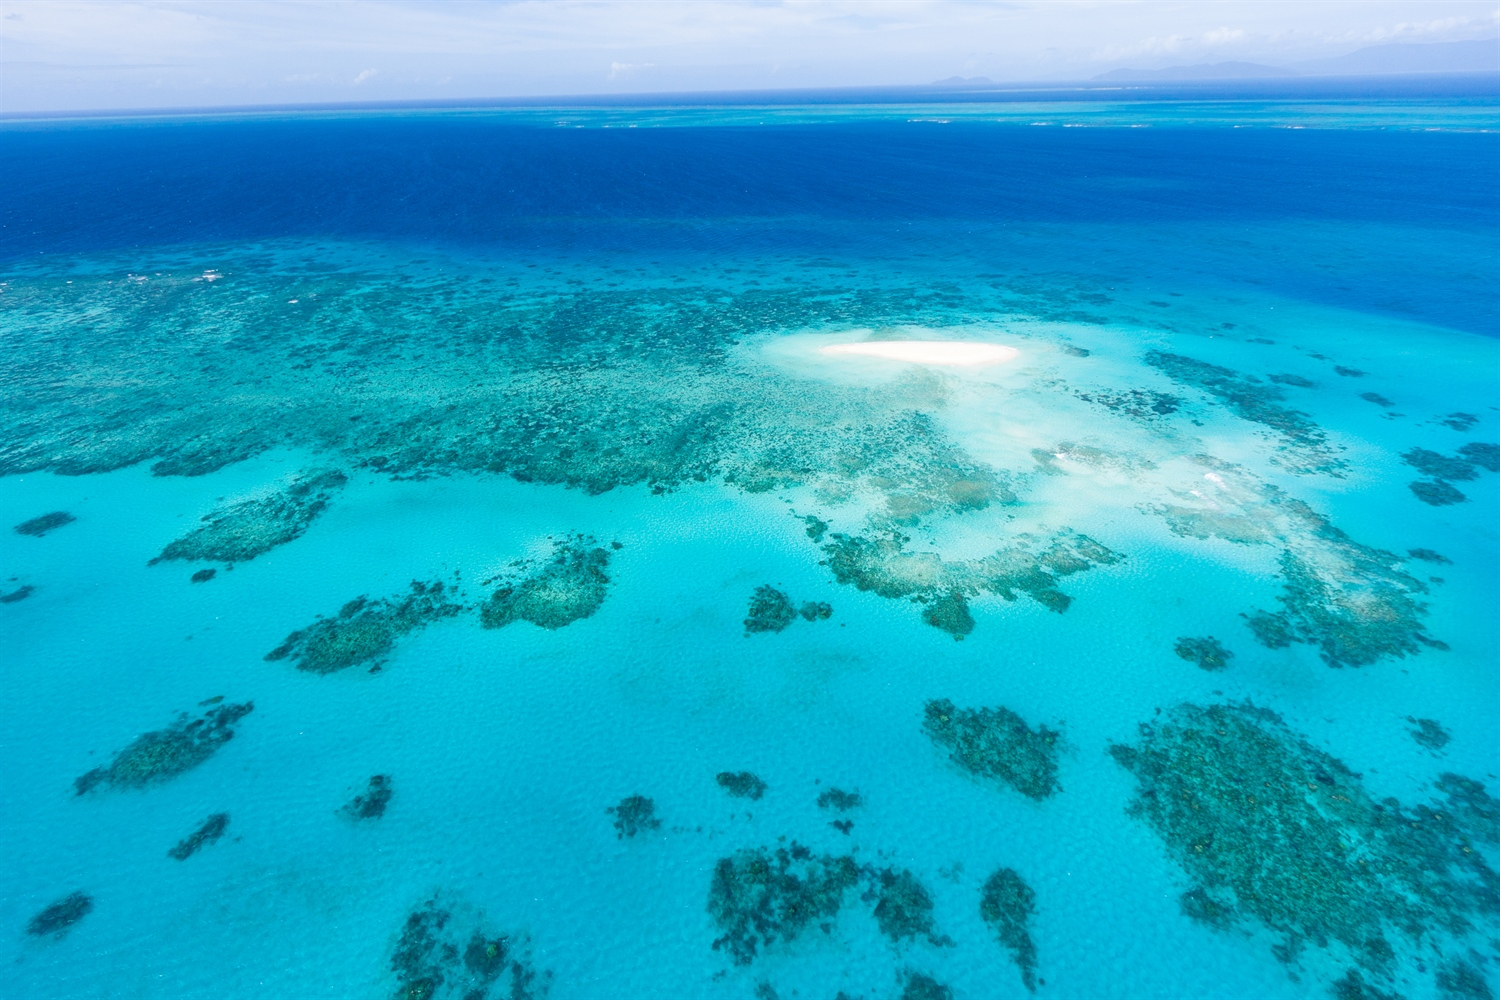 Arial View of Barrier Reef